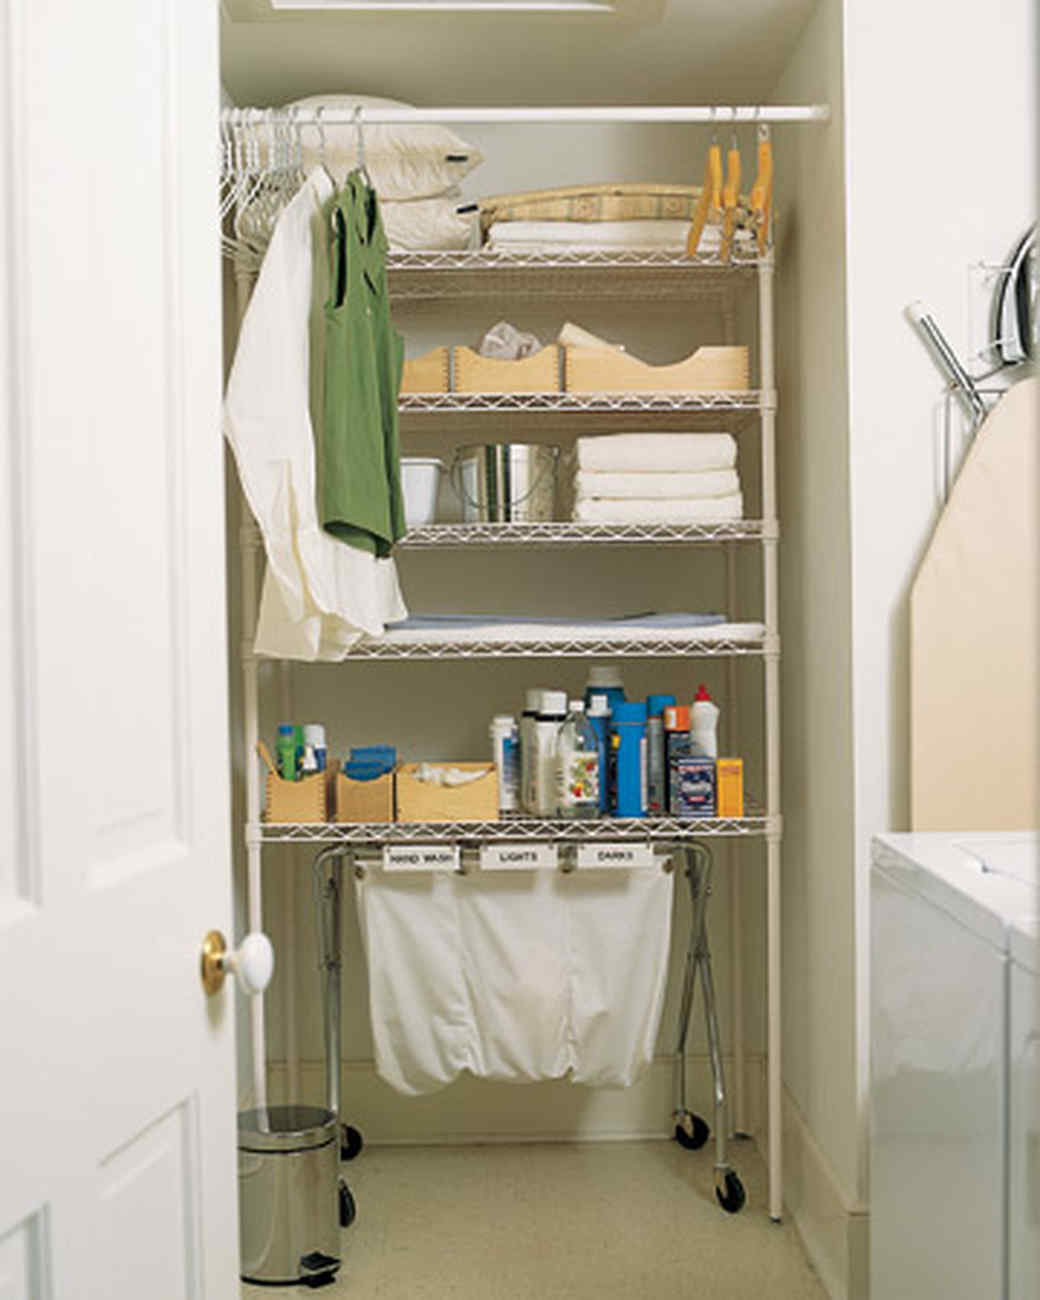 b kit cabinets laundry storage hpw the melamine modifi n w shelf room organization white home cabinet